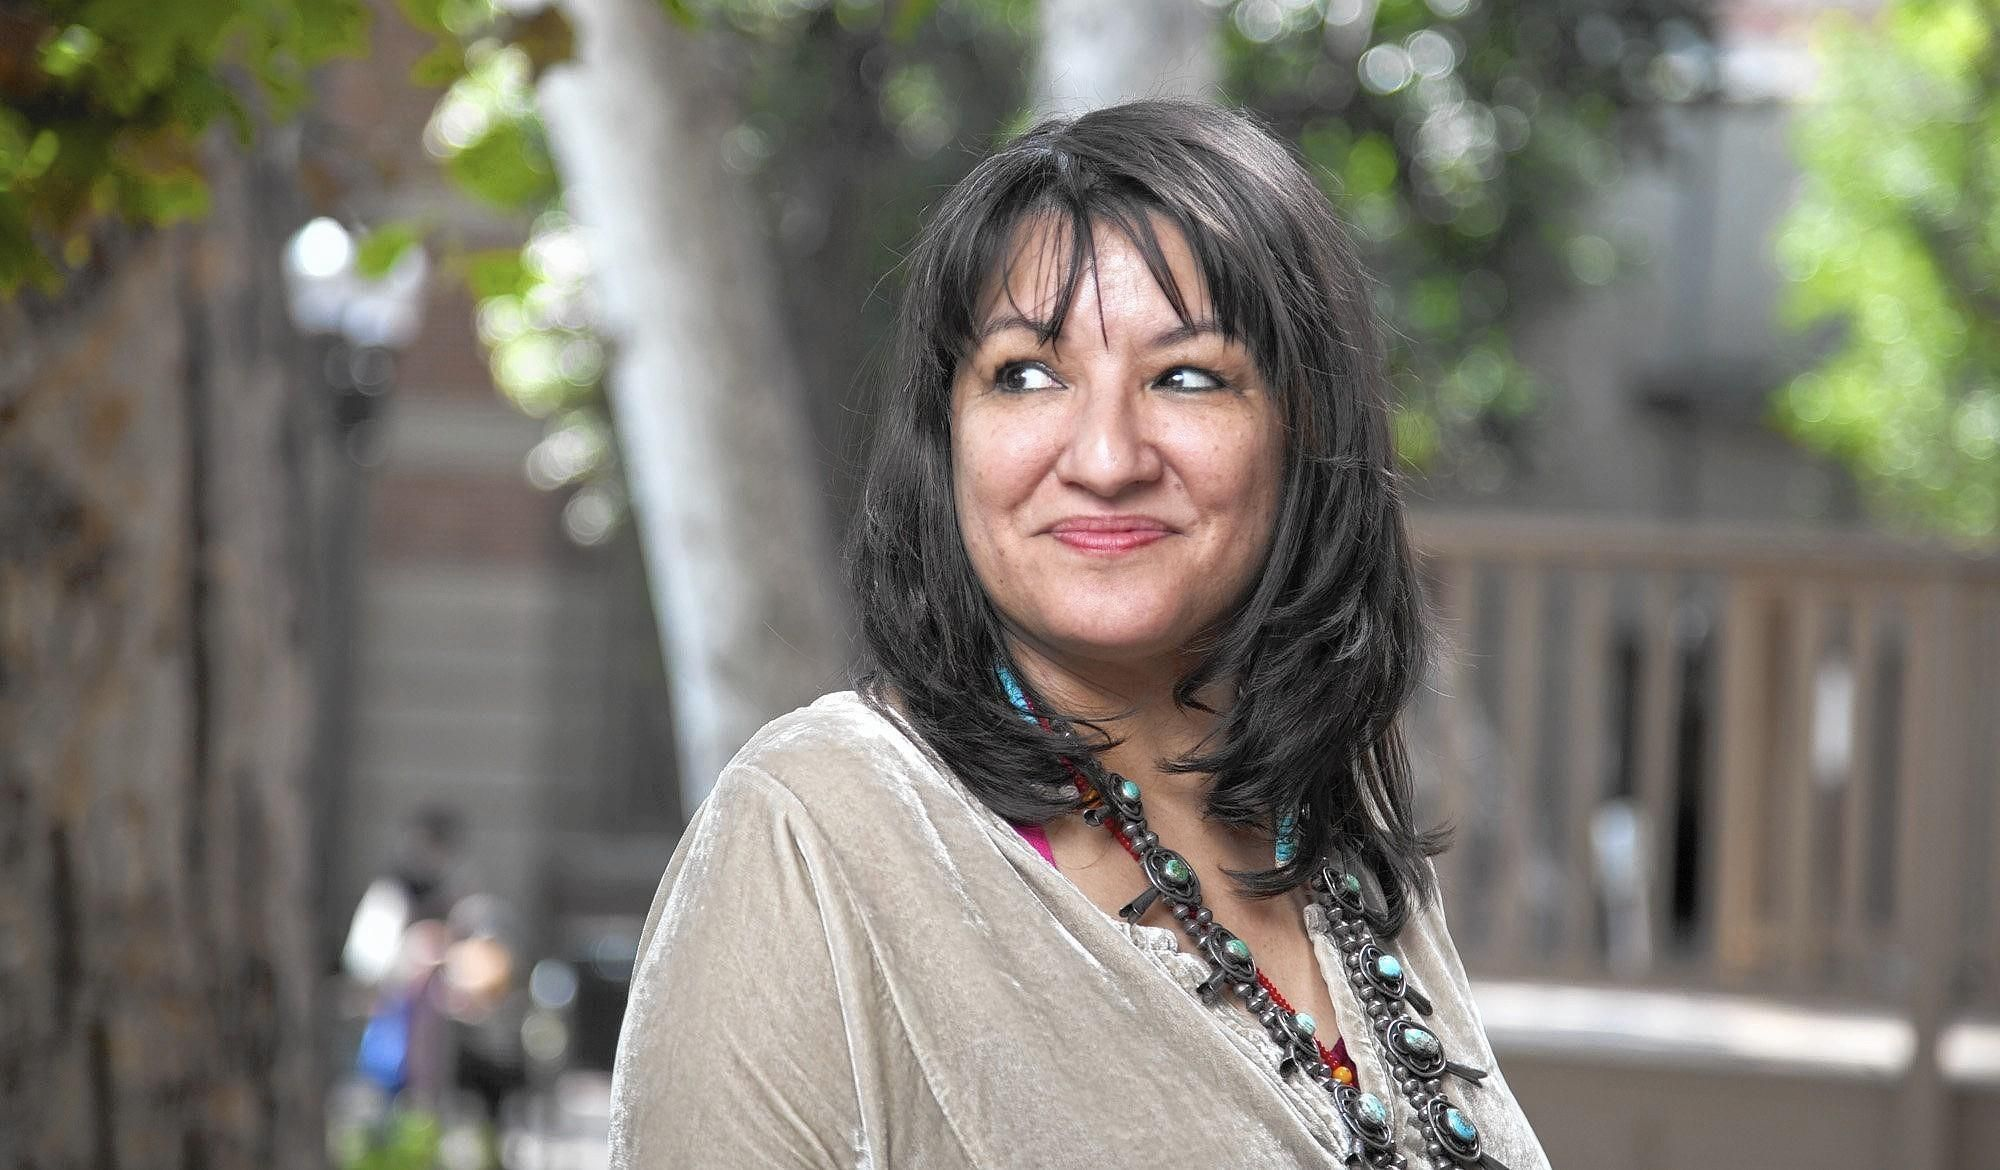 best images about house on mango street sandra cisneros on 17 best images about house on mango street sandra cisneros latinas my and sandra cisneros